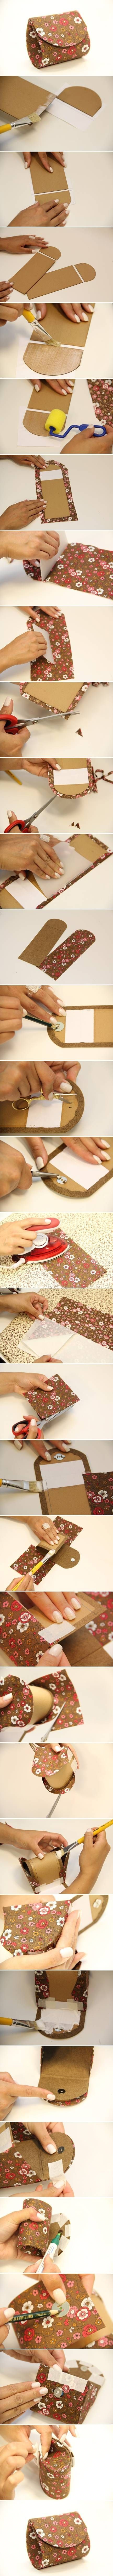 DIY Money Pouch Crafts Craft Ideas Easy Diy Use Cereal Boxes Milk Etc